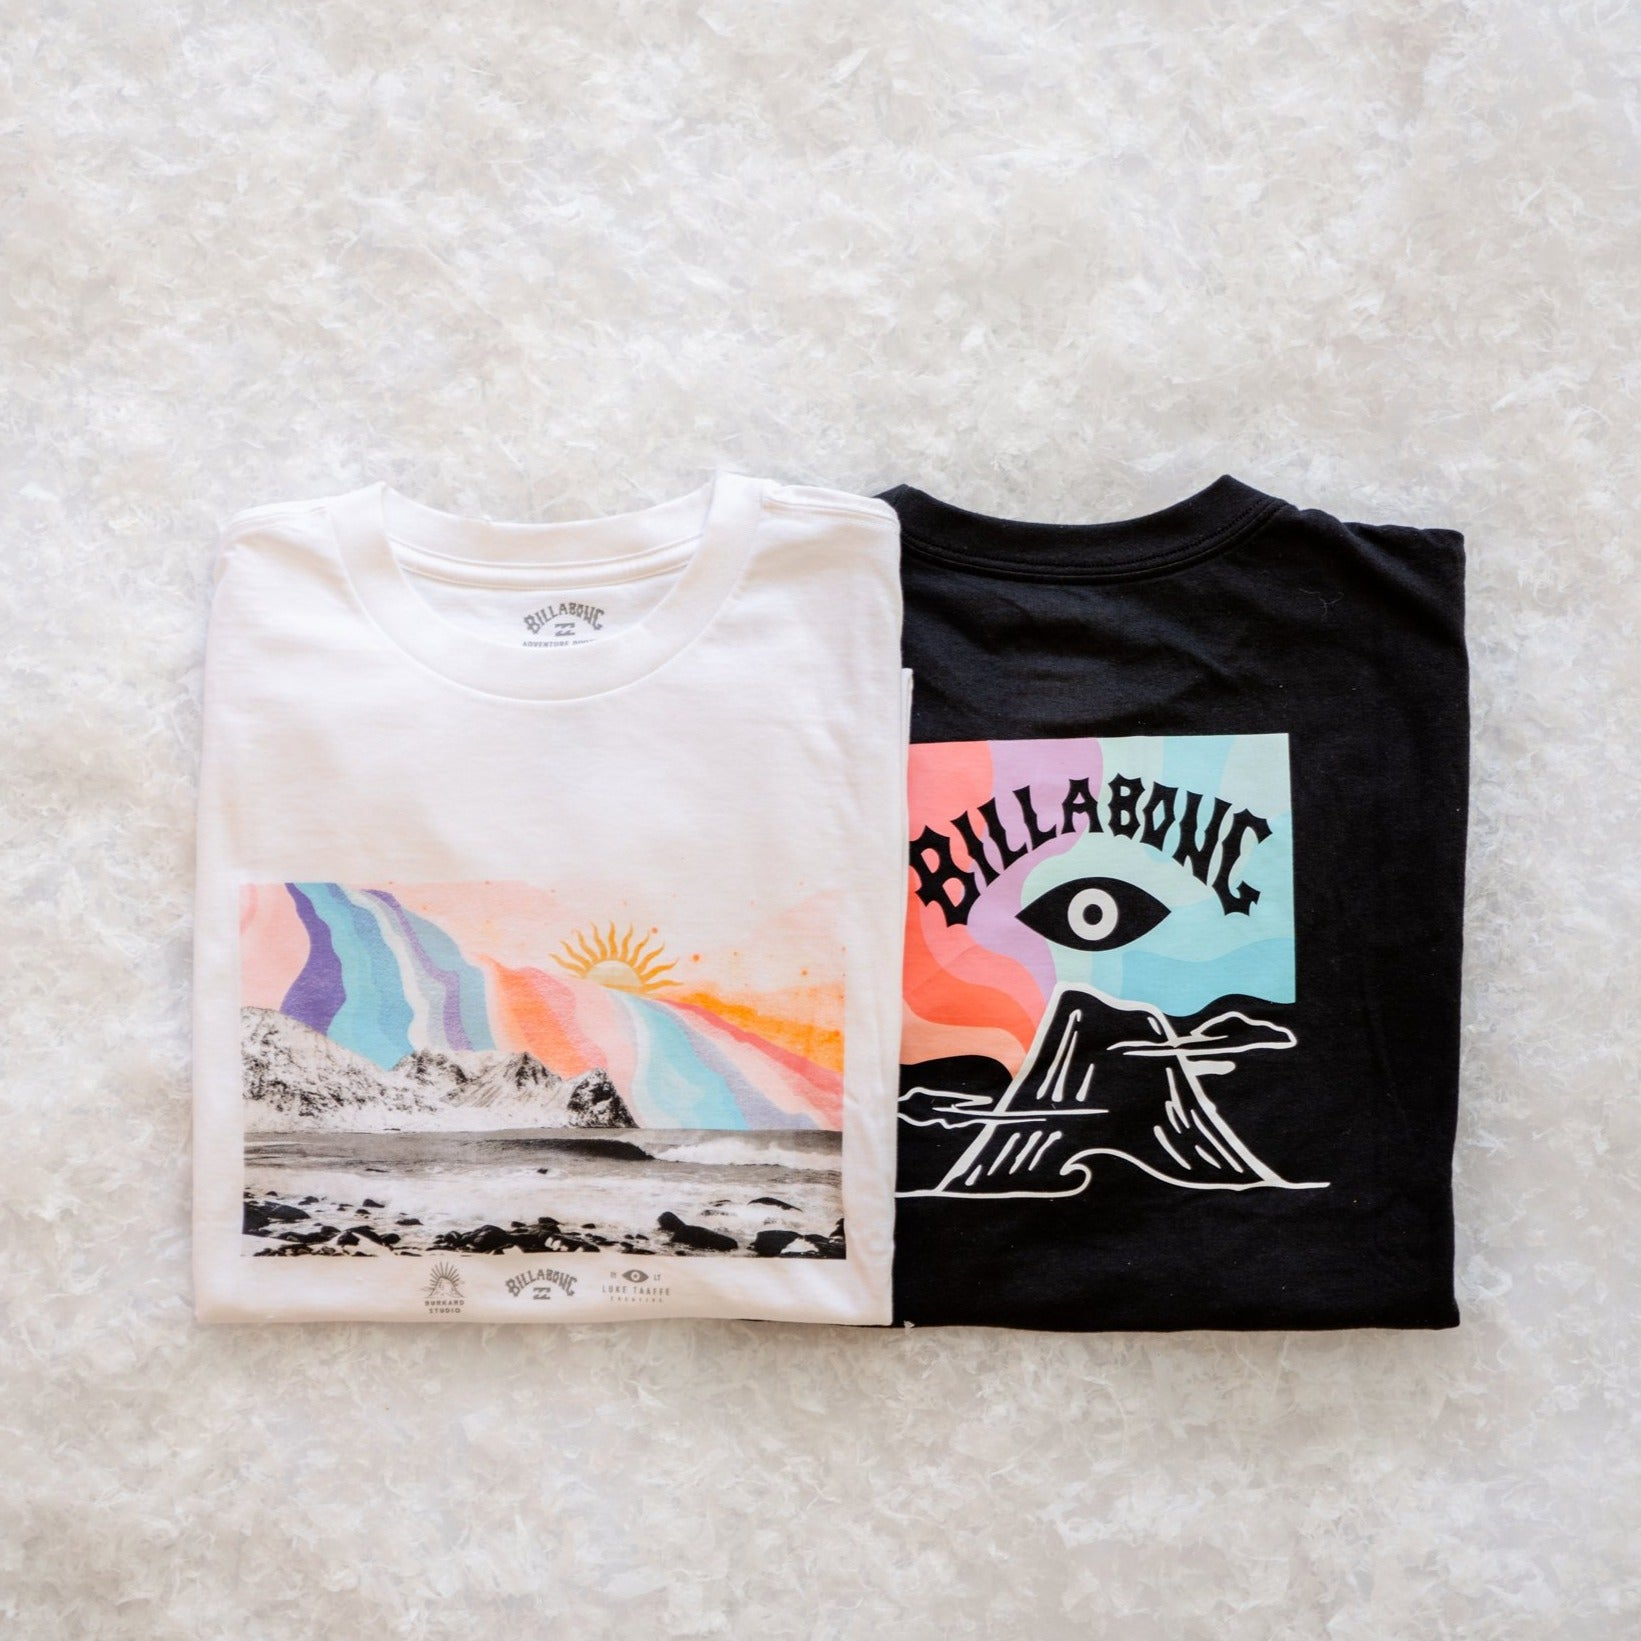 BILLABONG VOLCANO T-SHIRT BLACK